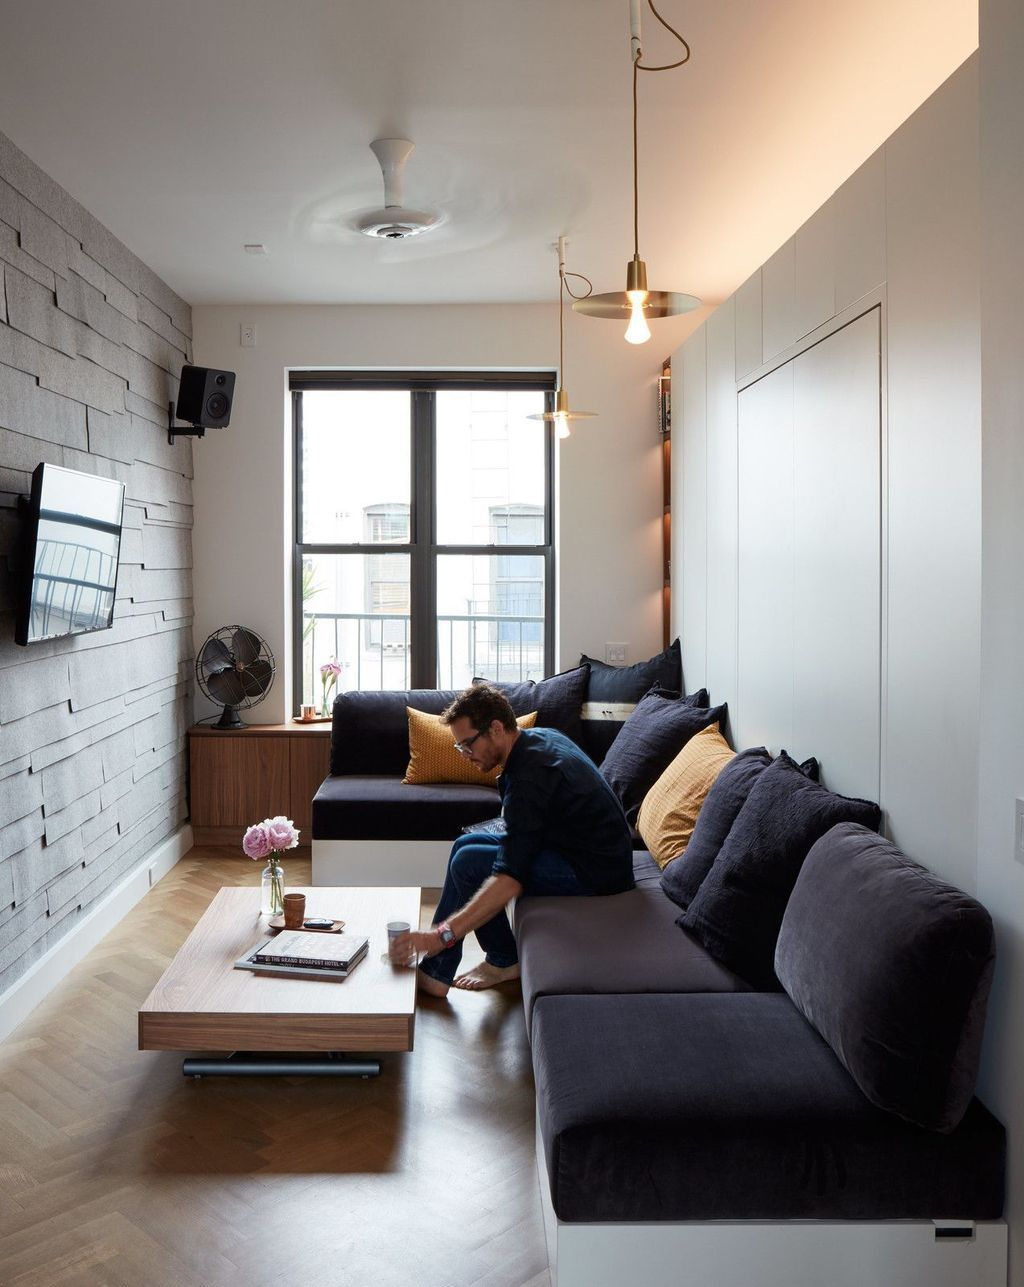 Cool 50 Modern Minimalist Living Room Ideas More At Https Homishome Com 2019 01 Small Apartment Living Room Small Living Room Decor Small Living Room Design